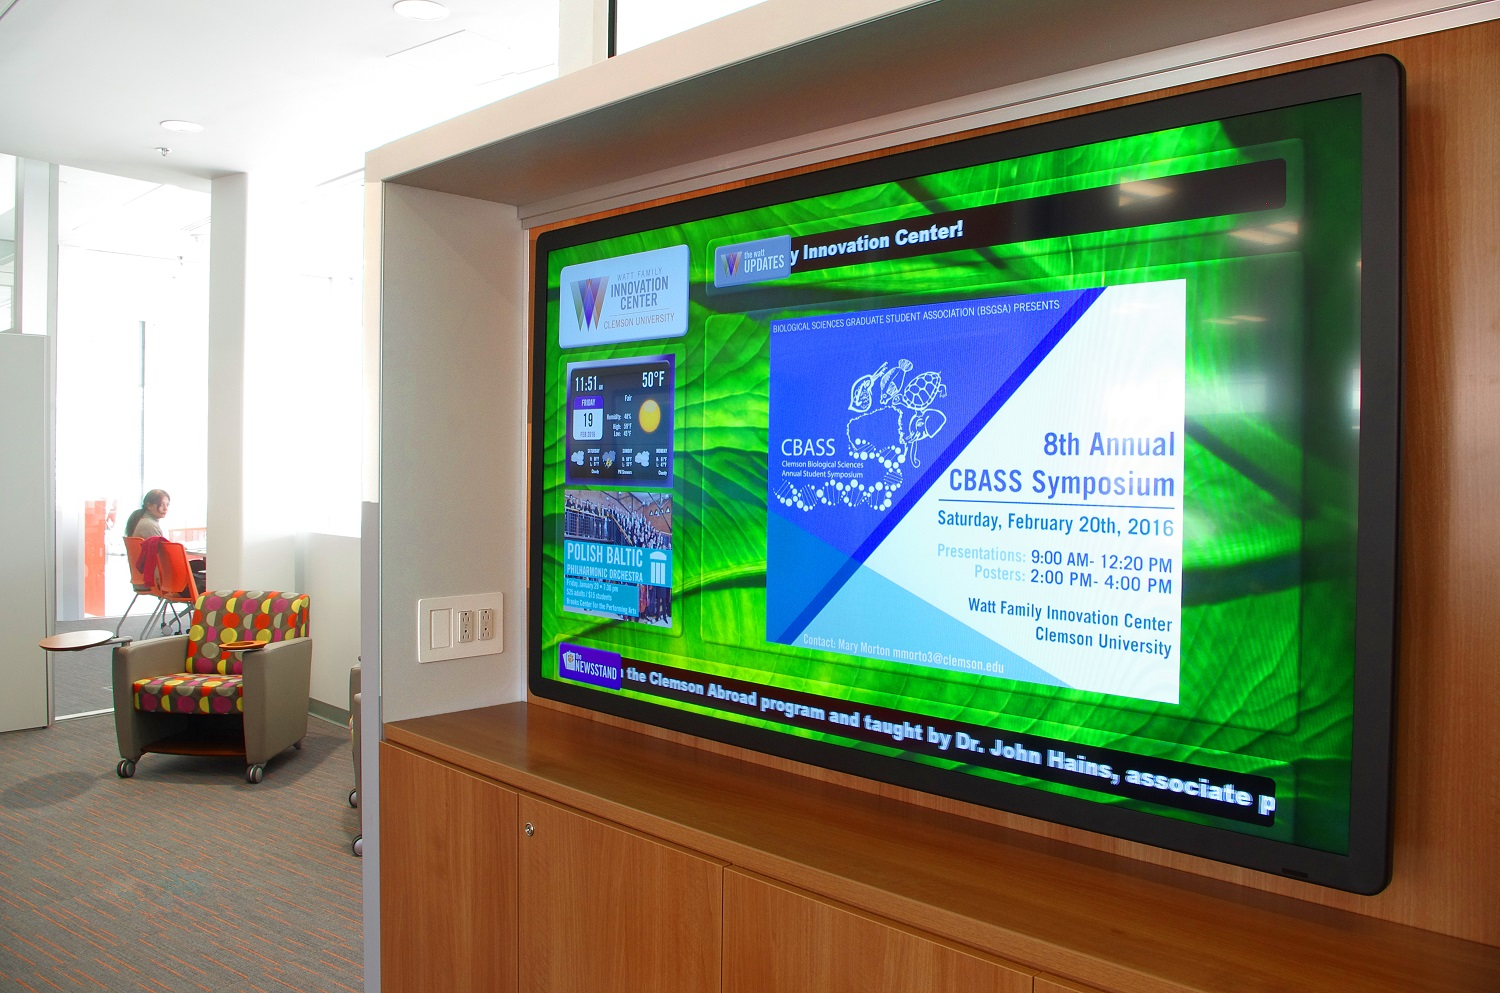 Digital signage display like this display timely information that is easily updated from a central location.